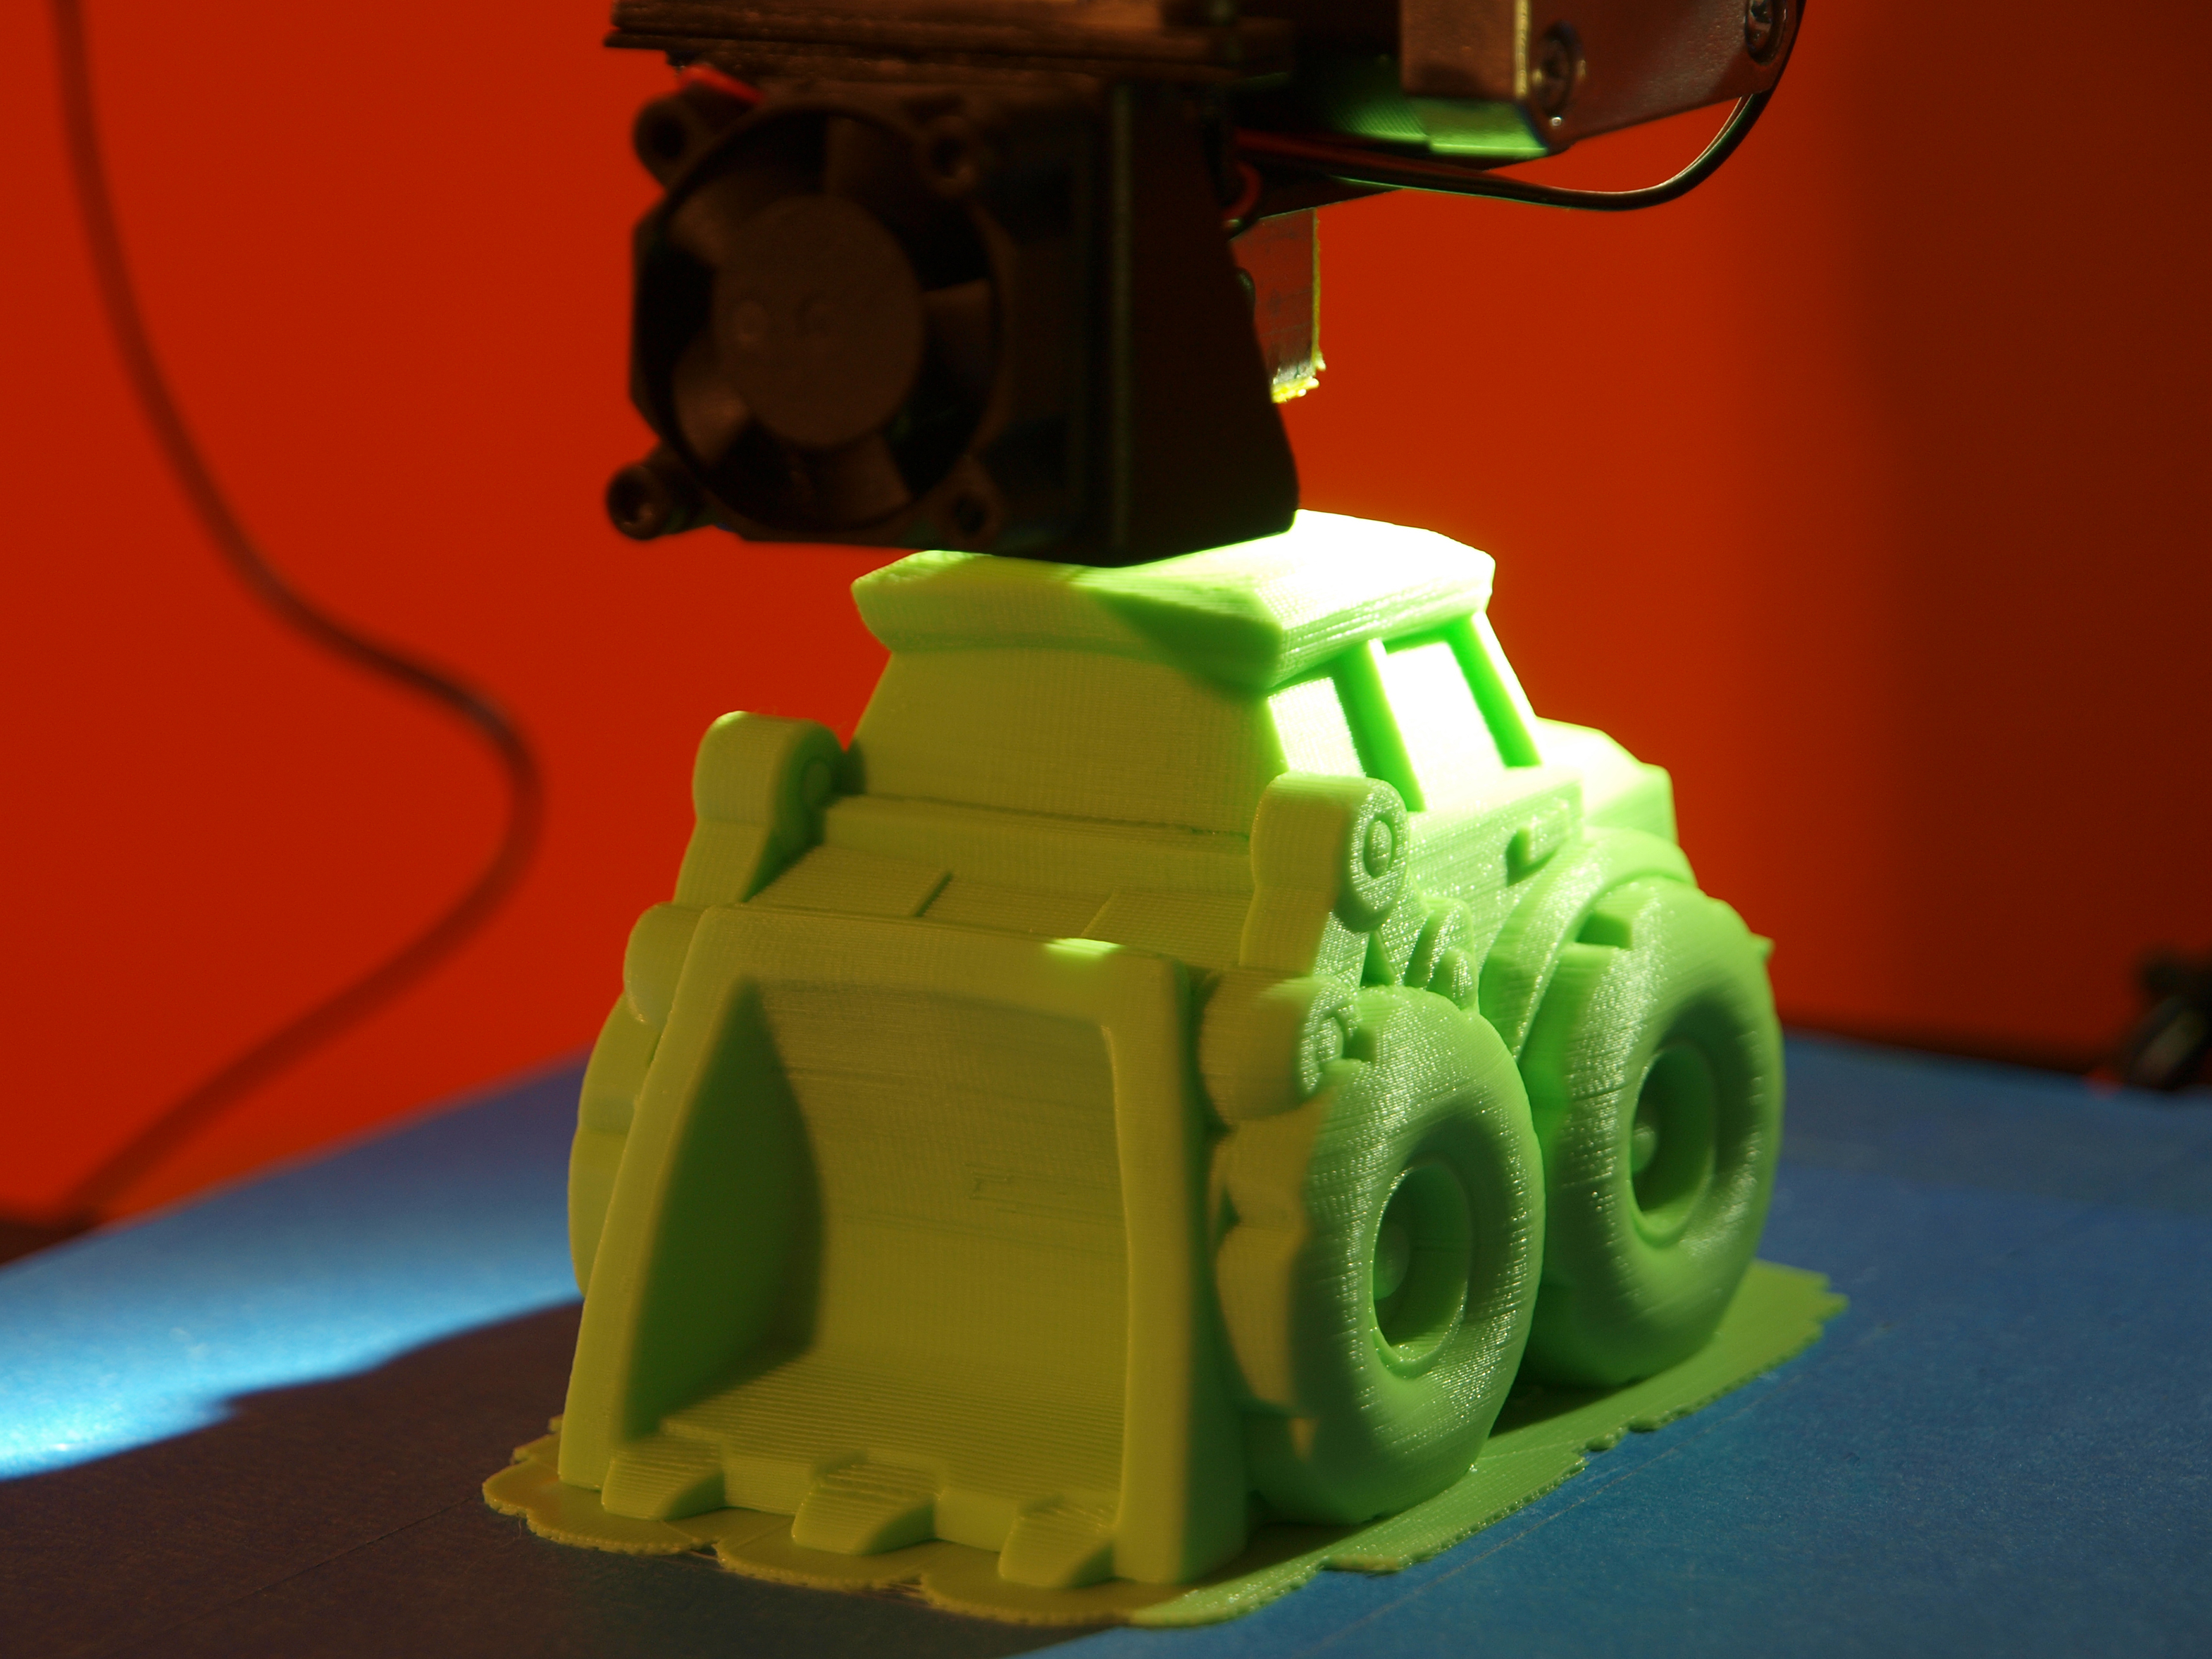 Sturdy Scooper - 3D Print, thing:222415